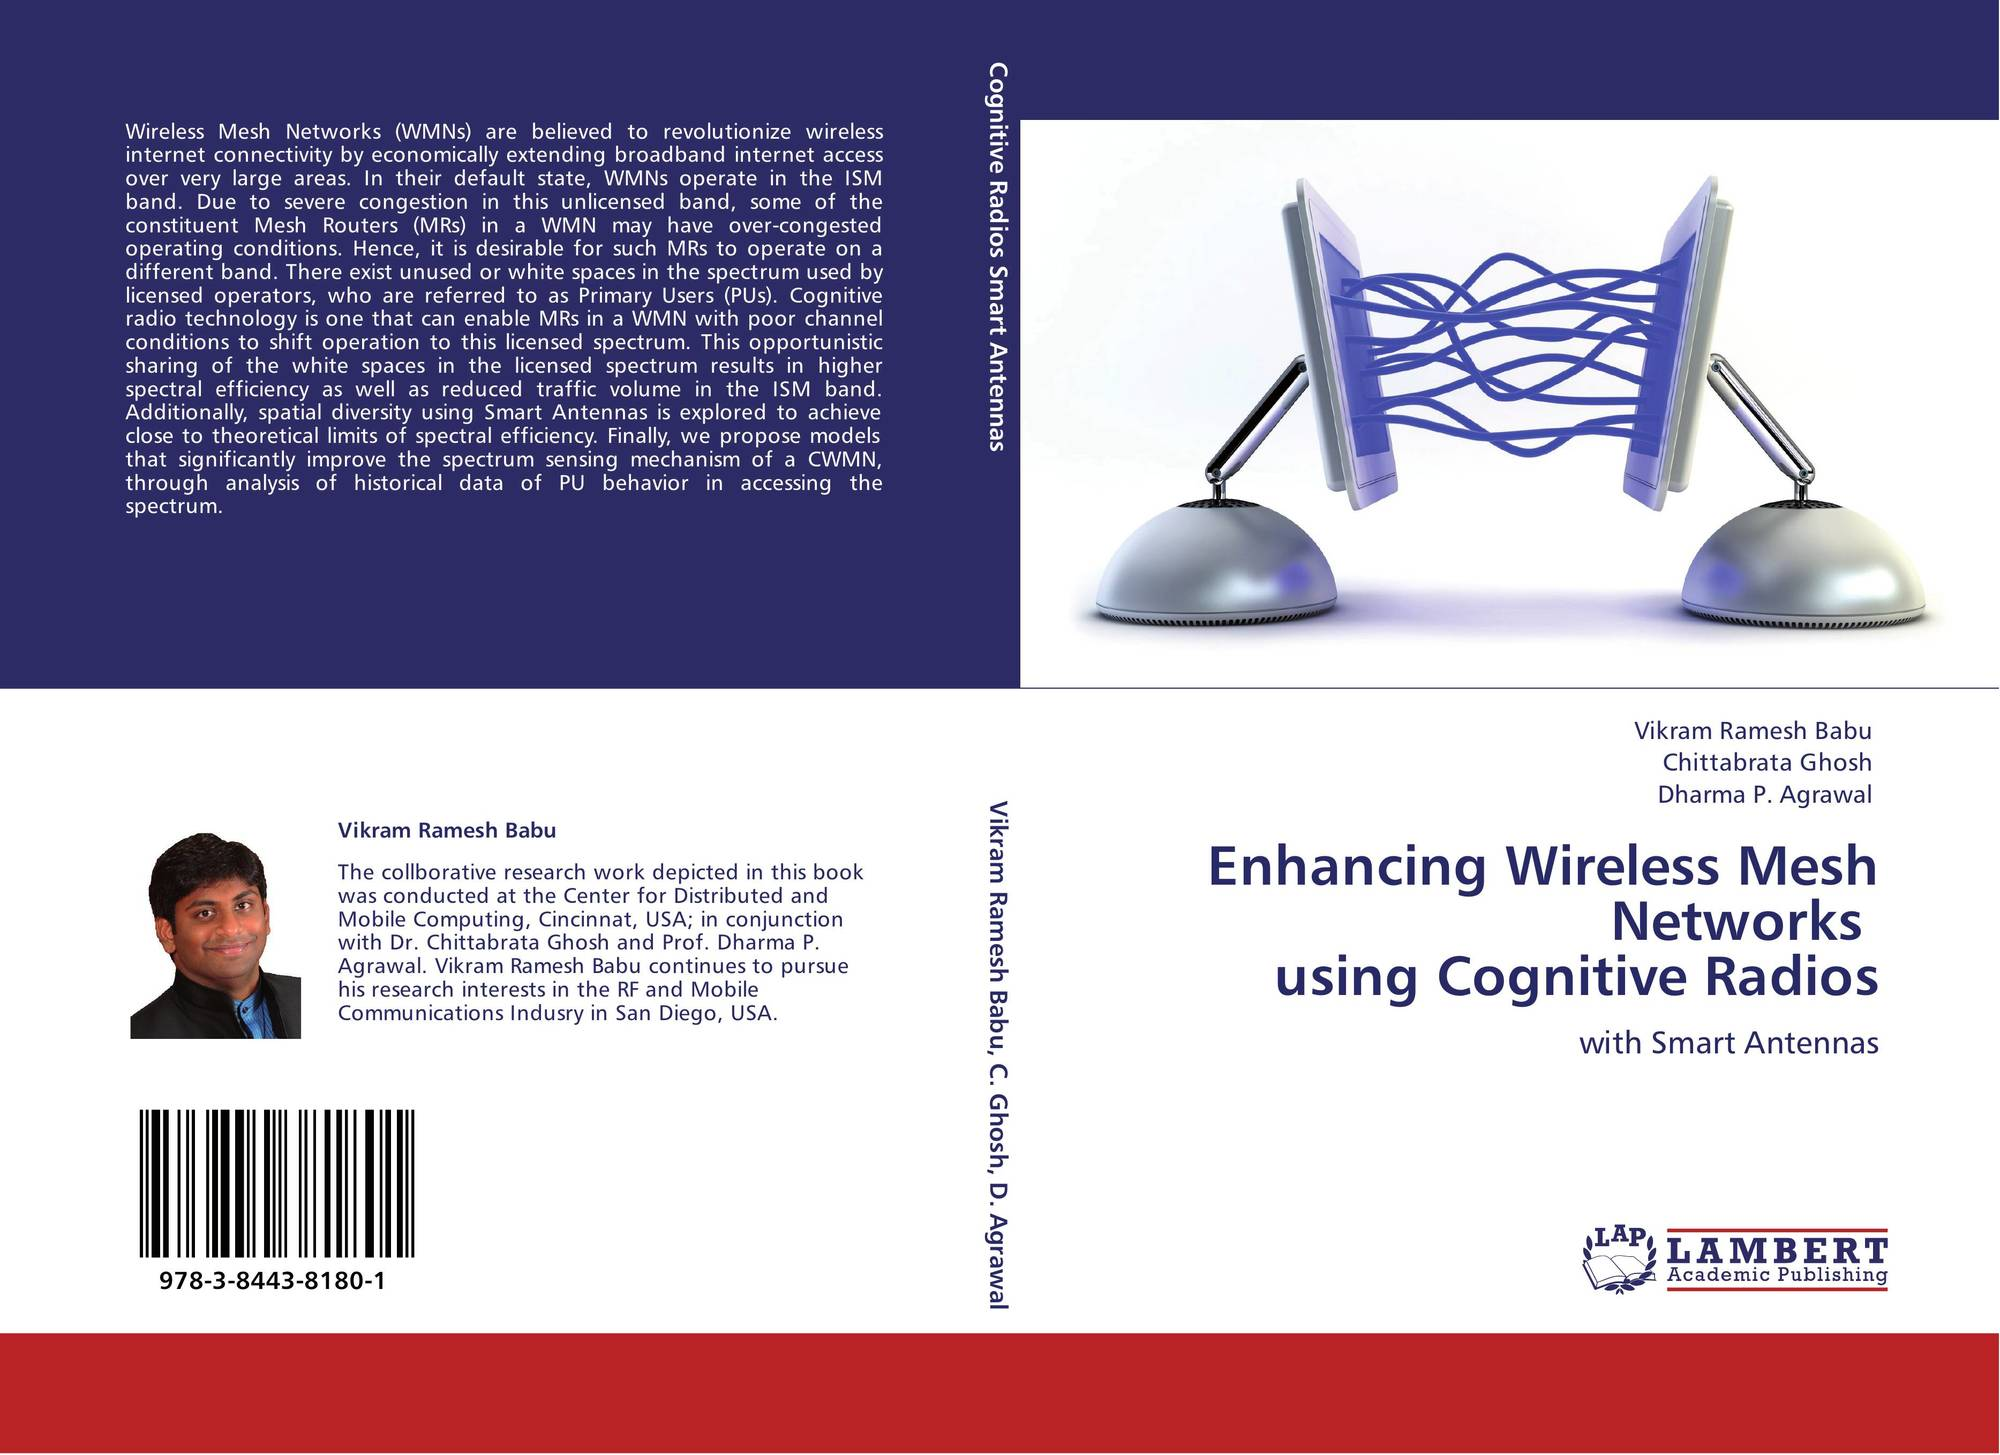 Search Results For Cognitive Radios Smart Antennas Wireless Mesh Bookcover Of Enhancing Networks Using